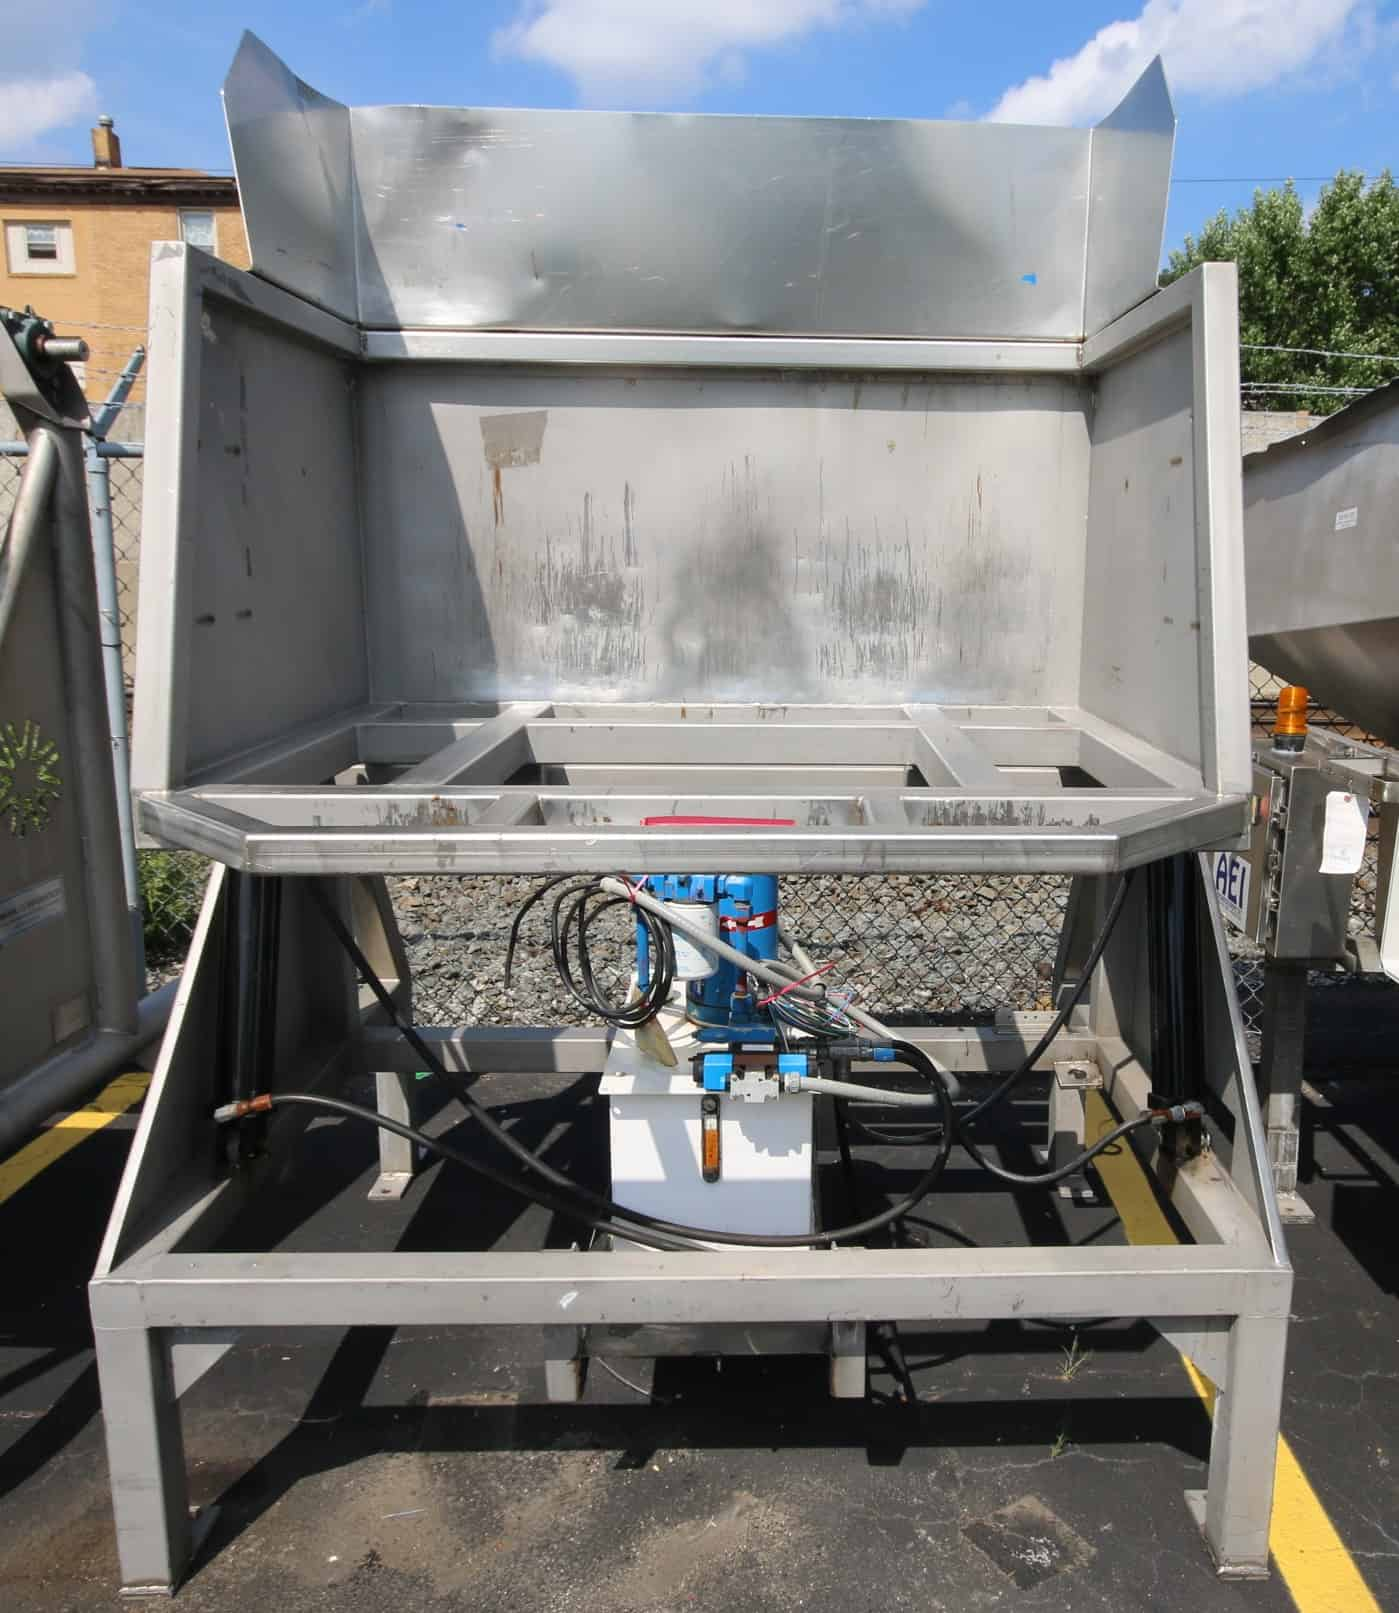 "(3) Vanmark All S/S Hydraulic IQF Tote Dump System, with 54"" L x 48"" Deep x 39"" & 44"" H Dump Area, On-Board Self Contained Hydraulic System with Control Box & Controllers"